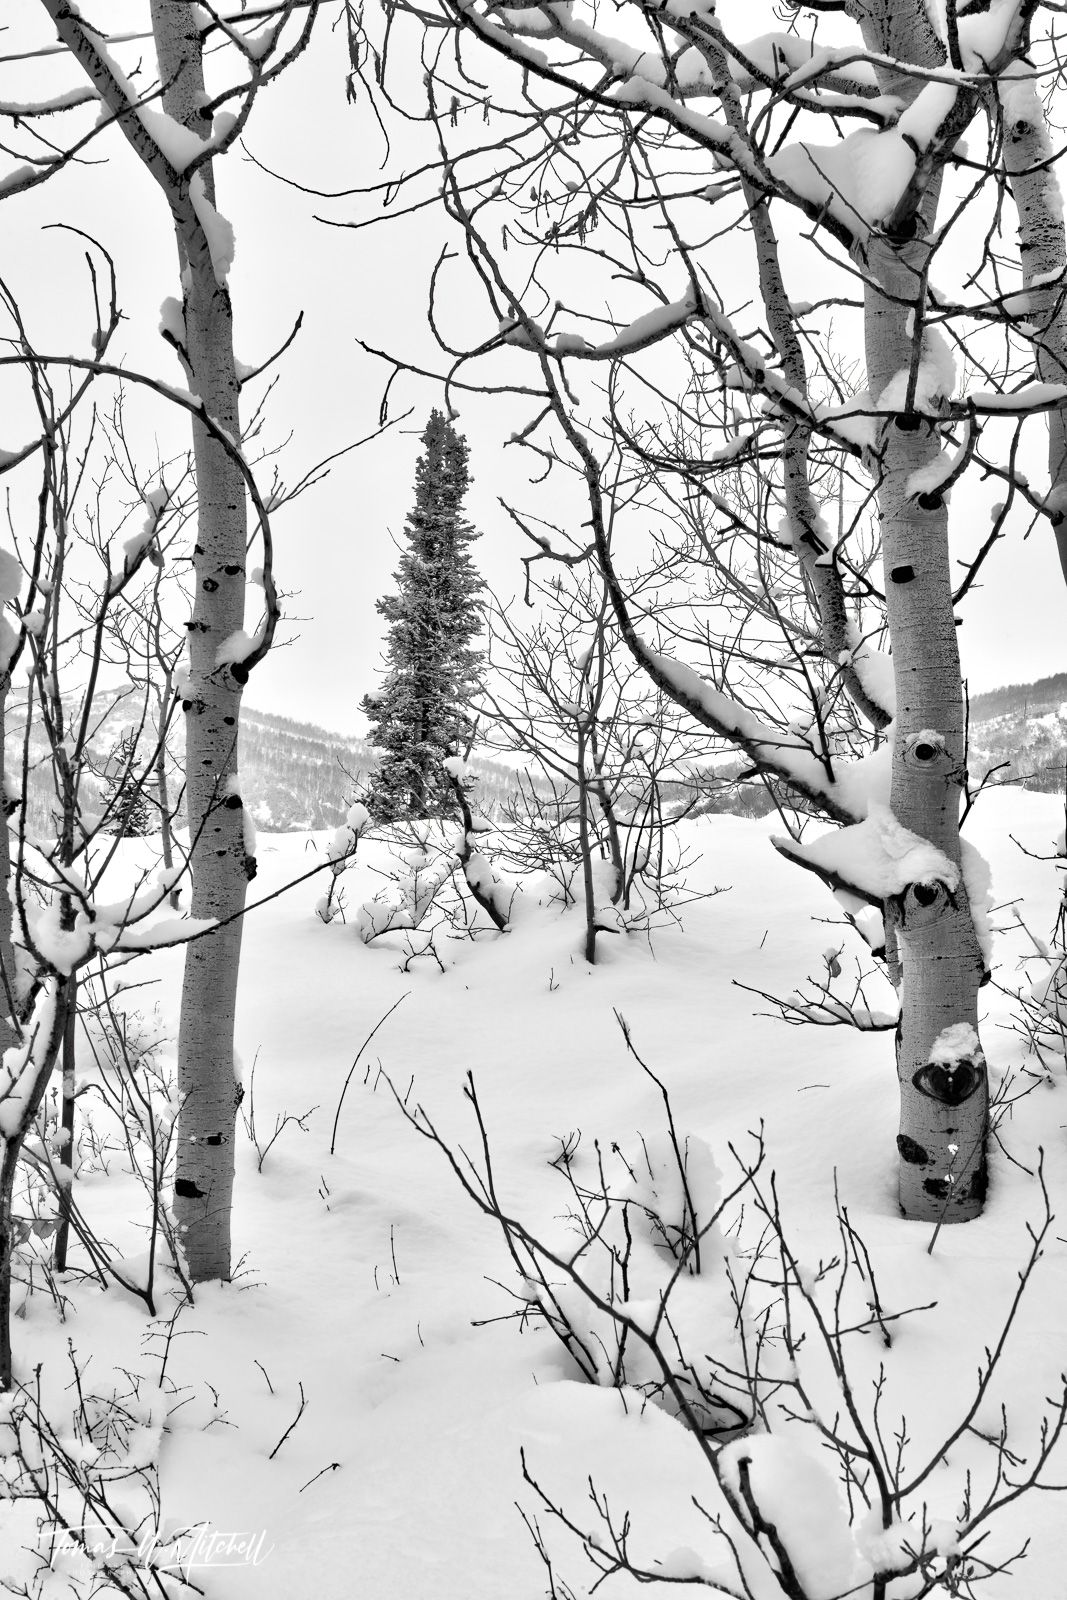 UINTA-WASATCH-CACHE NATIONAL FOREST, UTAH, storm, limited edition, fine art, prints, winter, white, snow, trees, branches,, photo